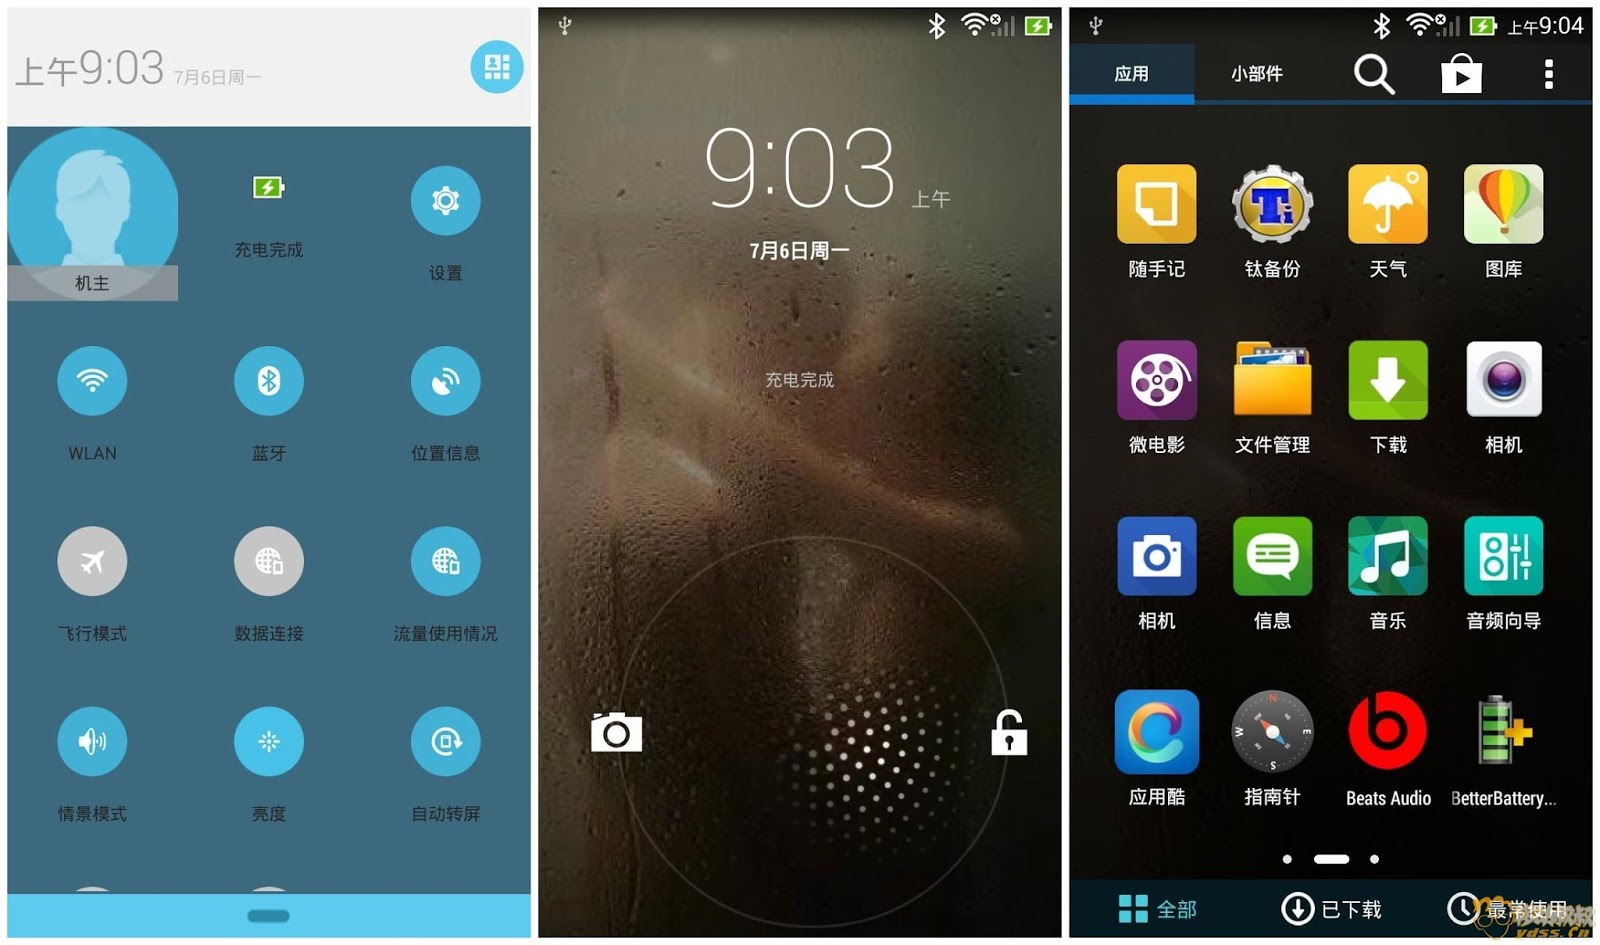 List Of ROMs Available for Xiaomi Redmi Note 3G - Droid Tech